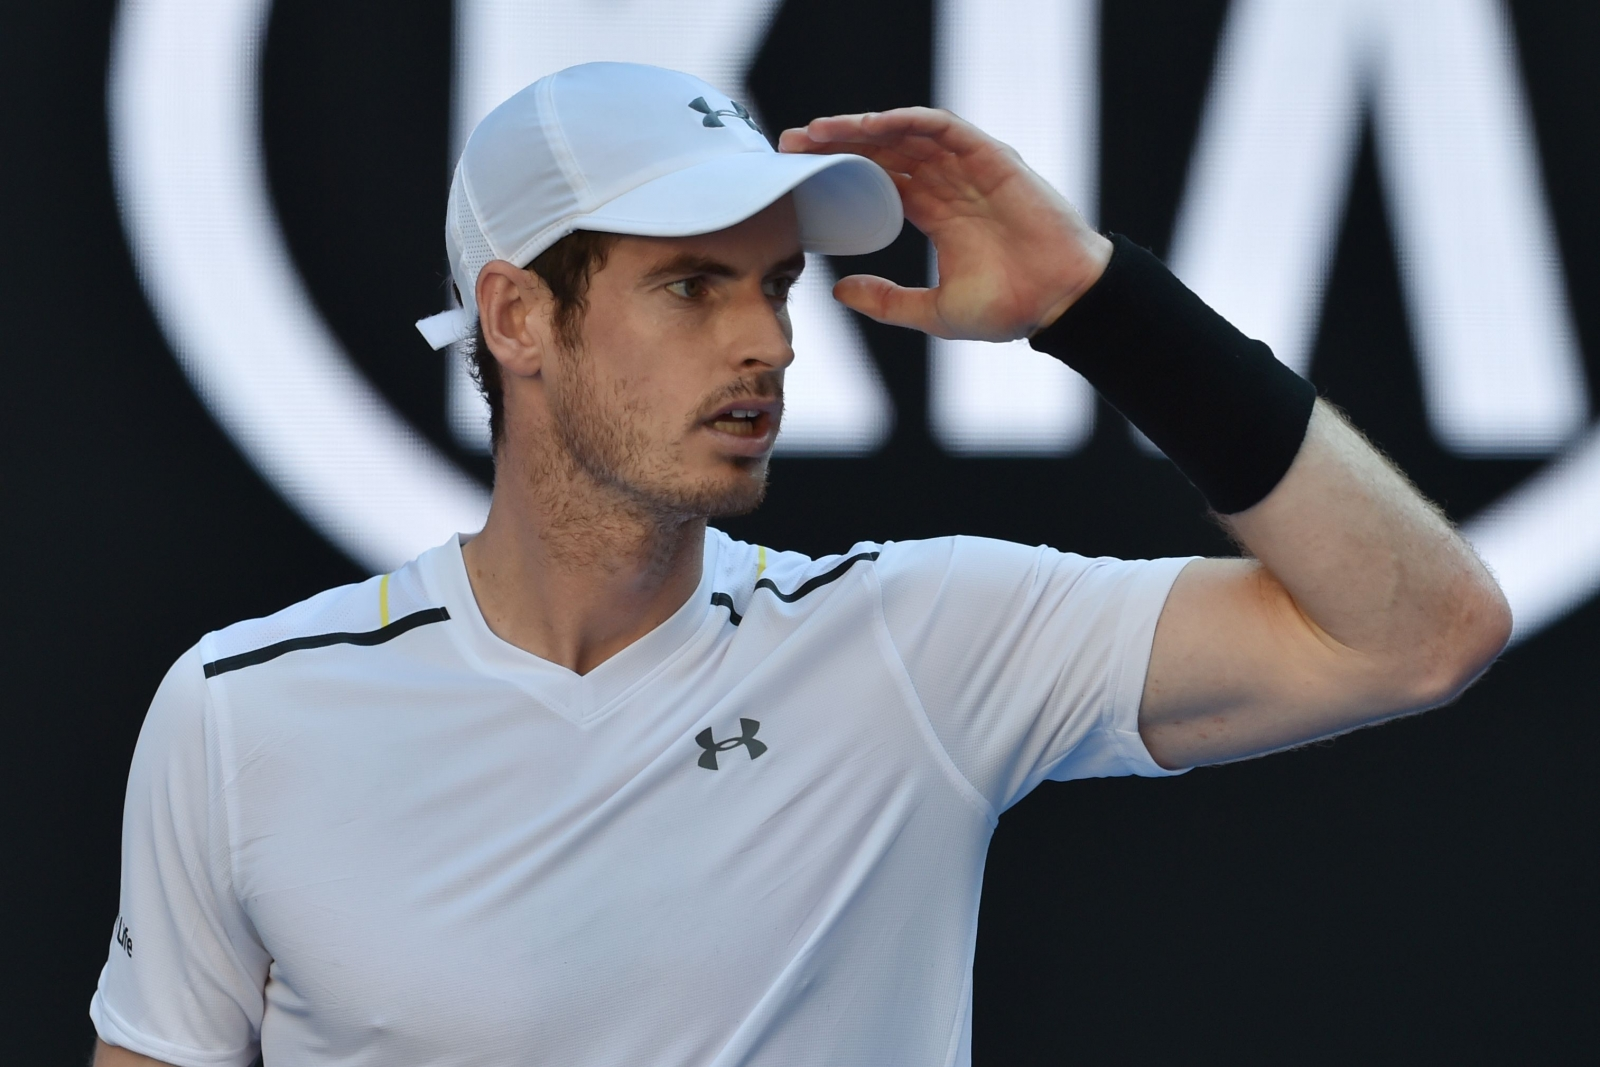 Andy Murray critical of Maria Sharapova being given tournament wild cards